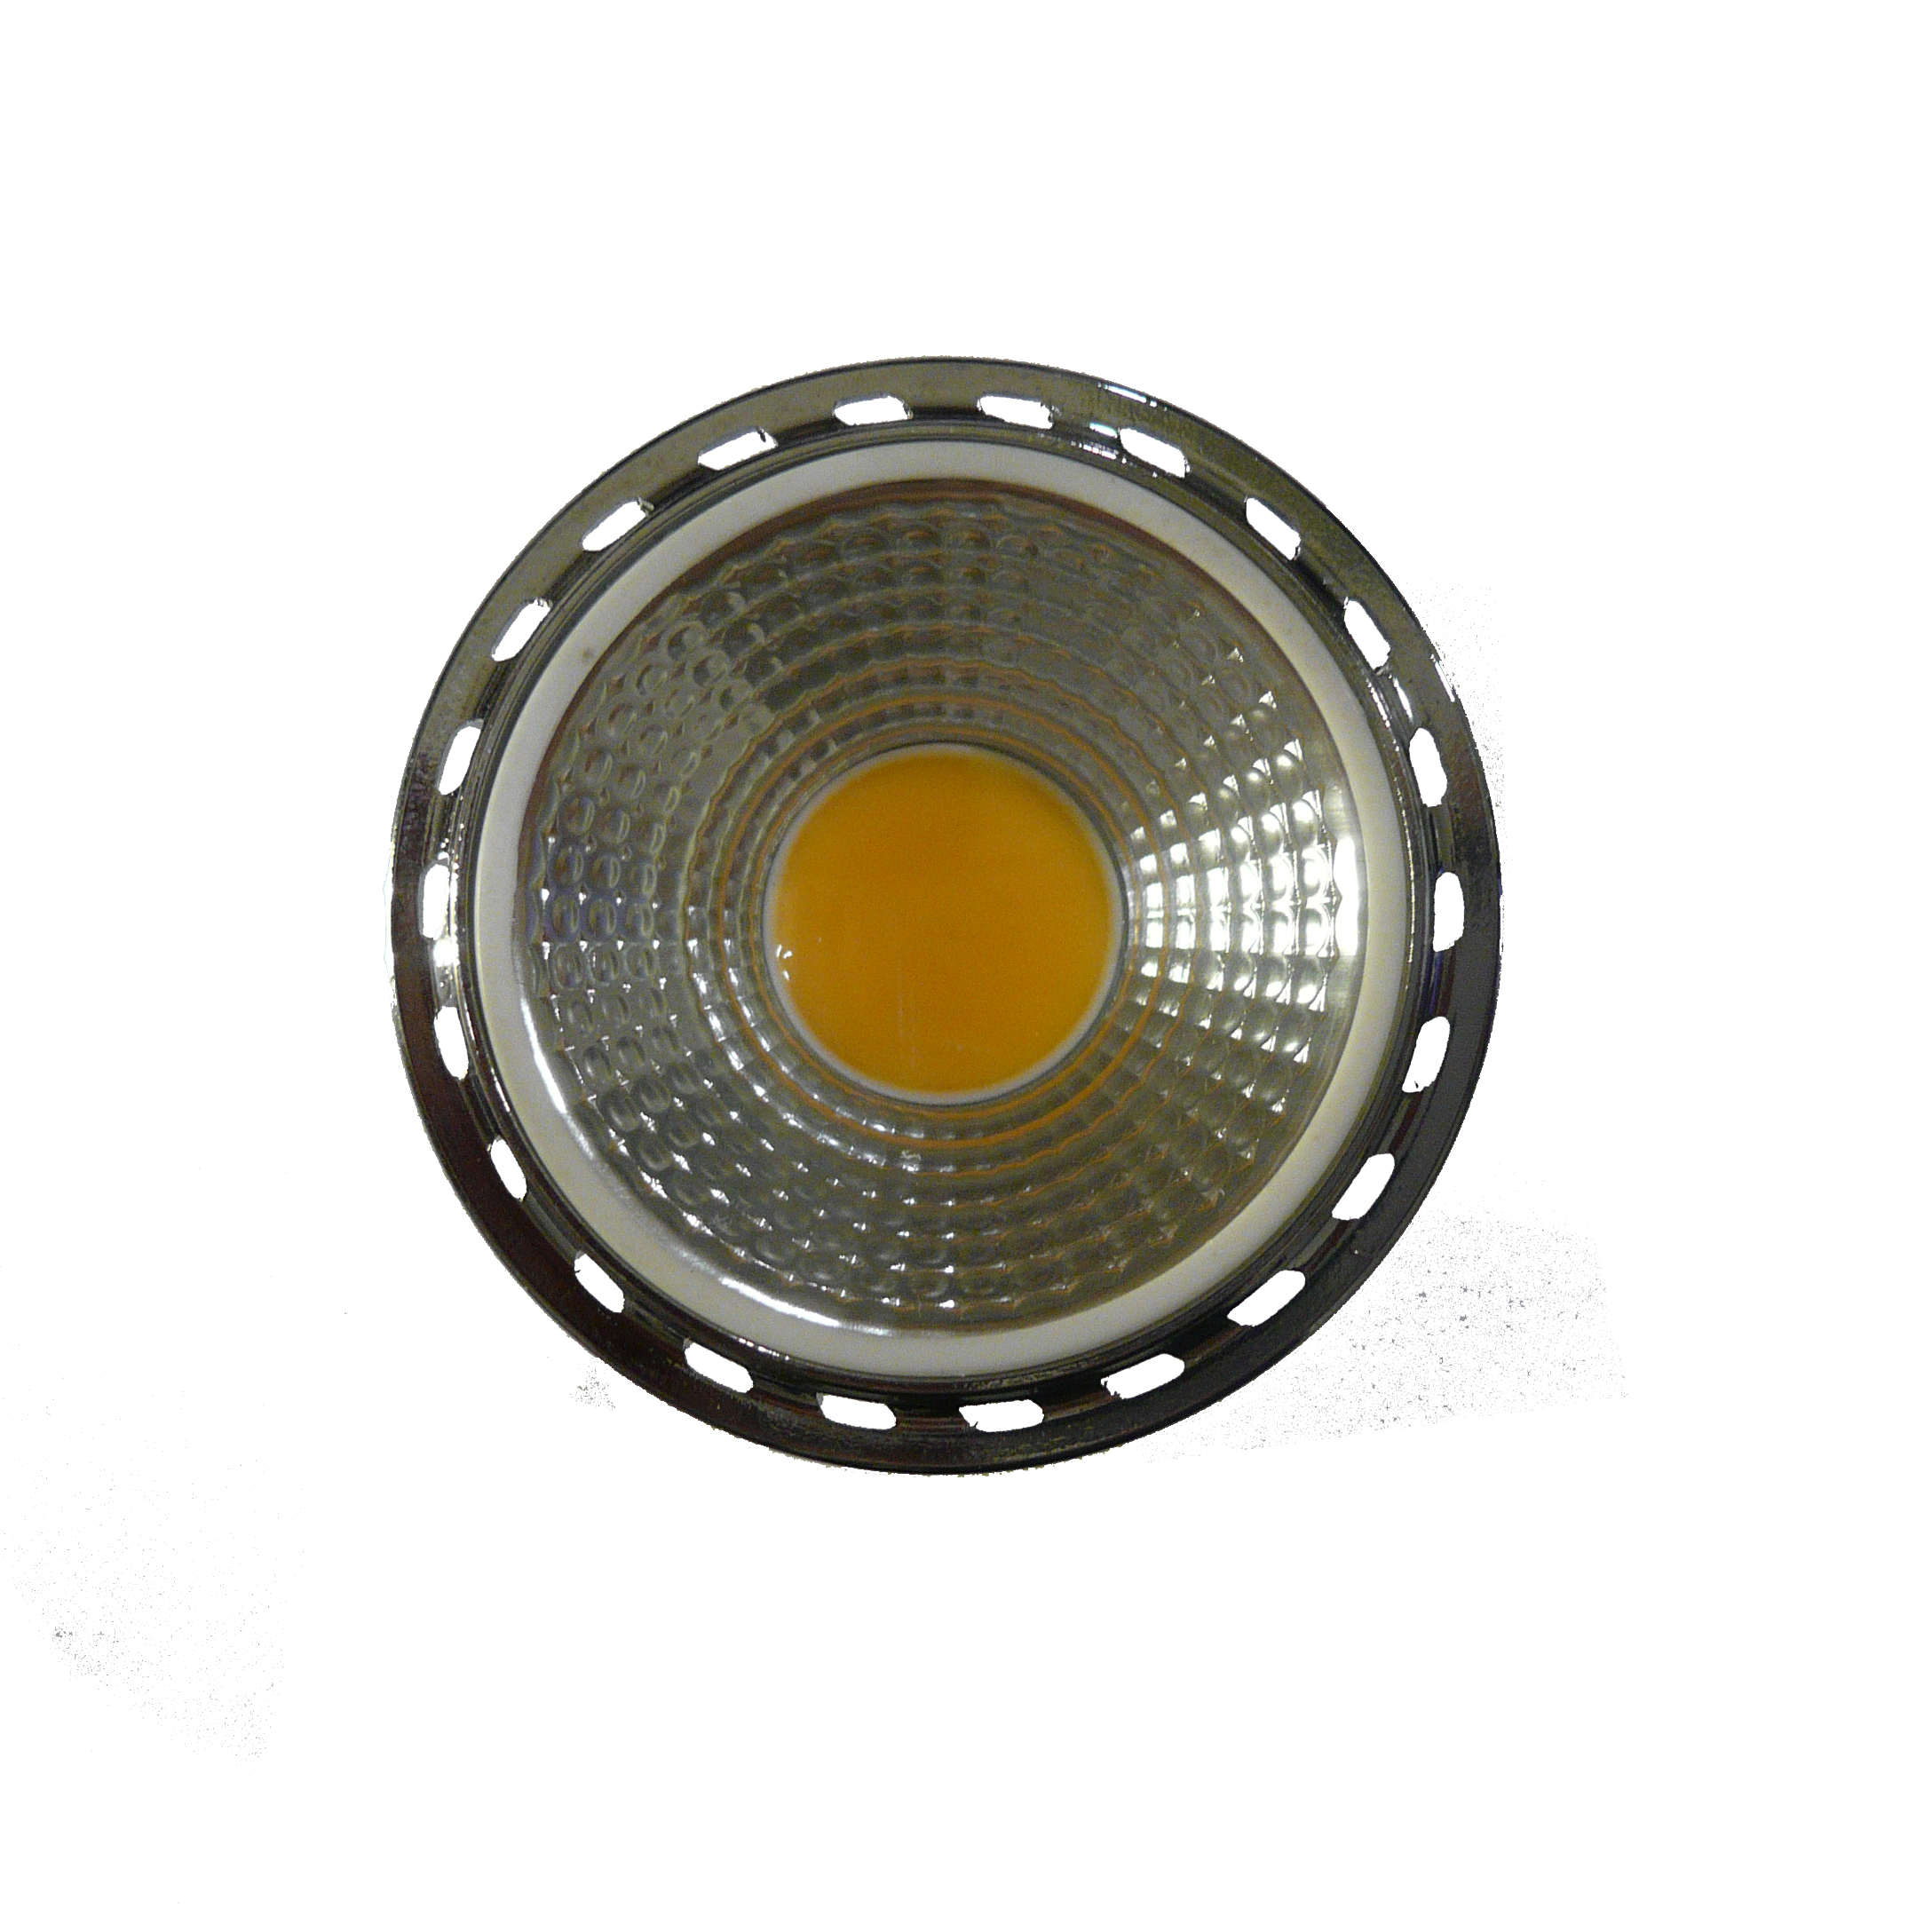 Gu10 Led G9 Gu9 Cob Led Lamp 230v 1 6 Watt Dimbaar Extra Warm Wit